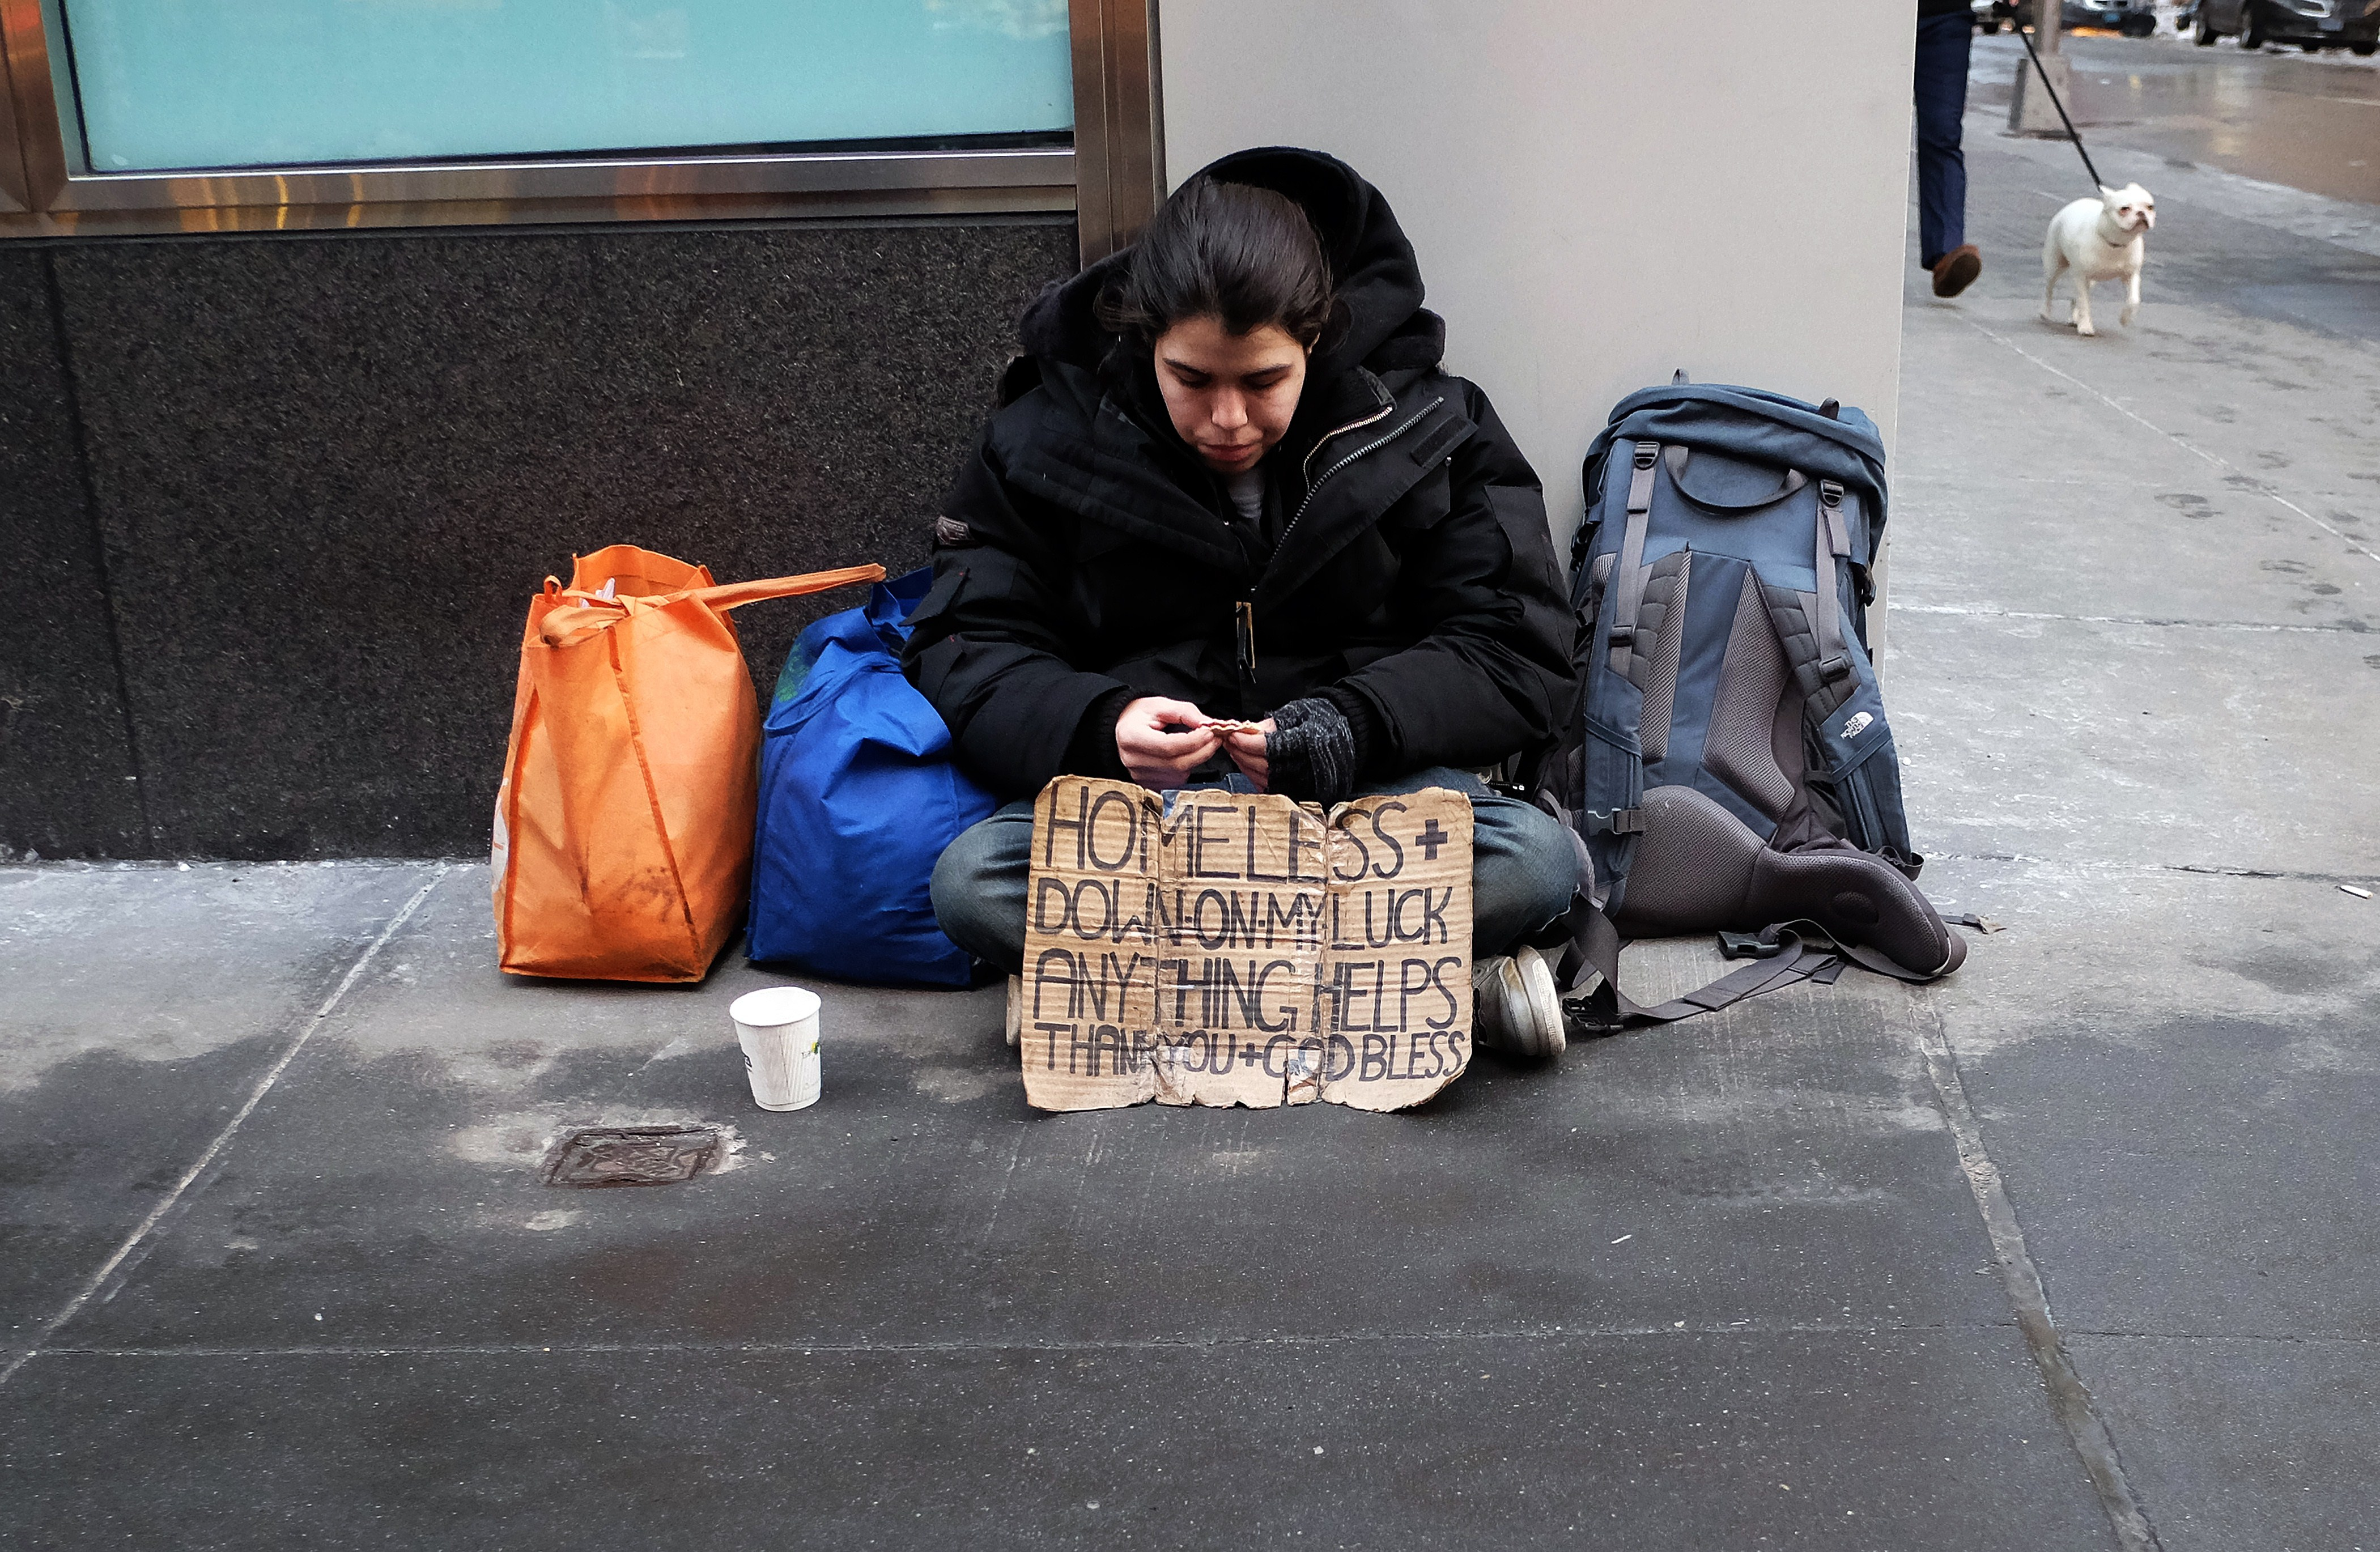 A homeless woman begs for help on the street (Photo: Jewel Samad/AFP/Getty Images)